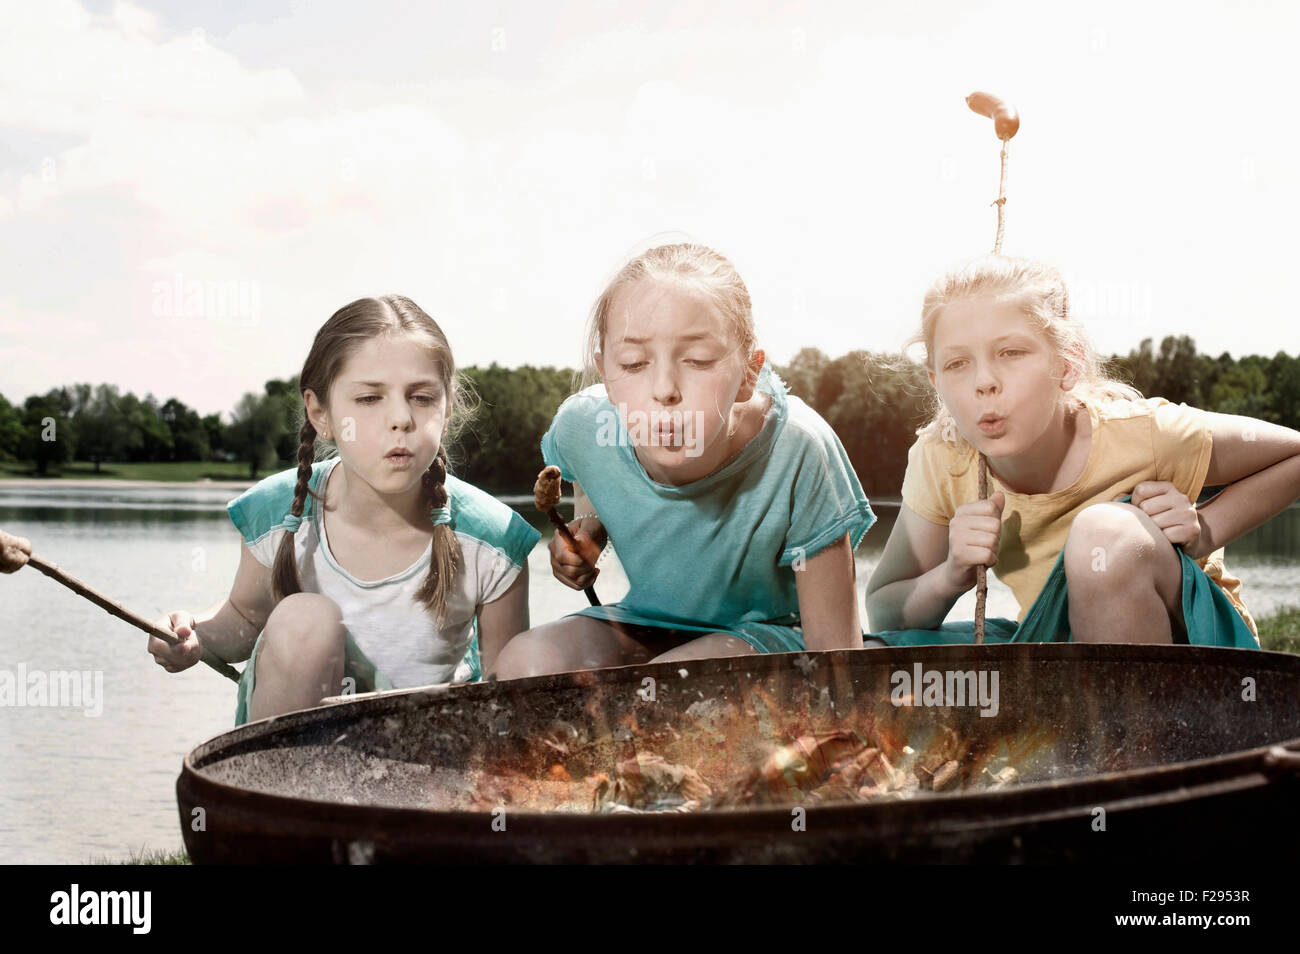 Three friends preparing sausages on campfire, Bavaria, Germany - Stock Image